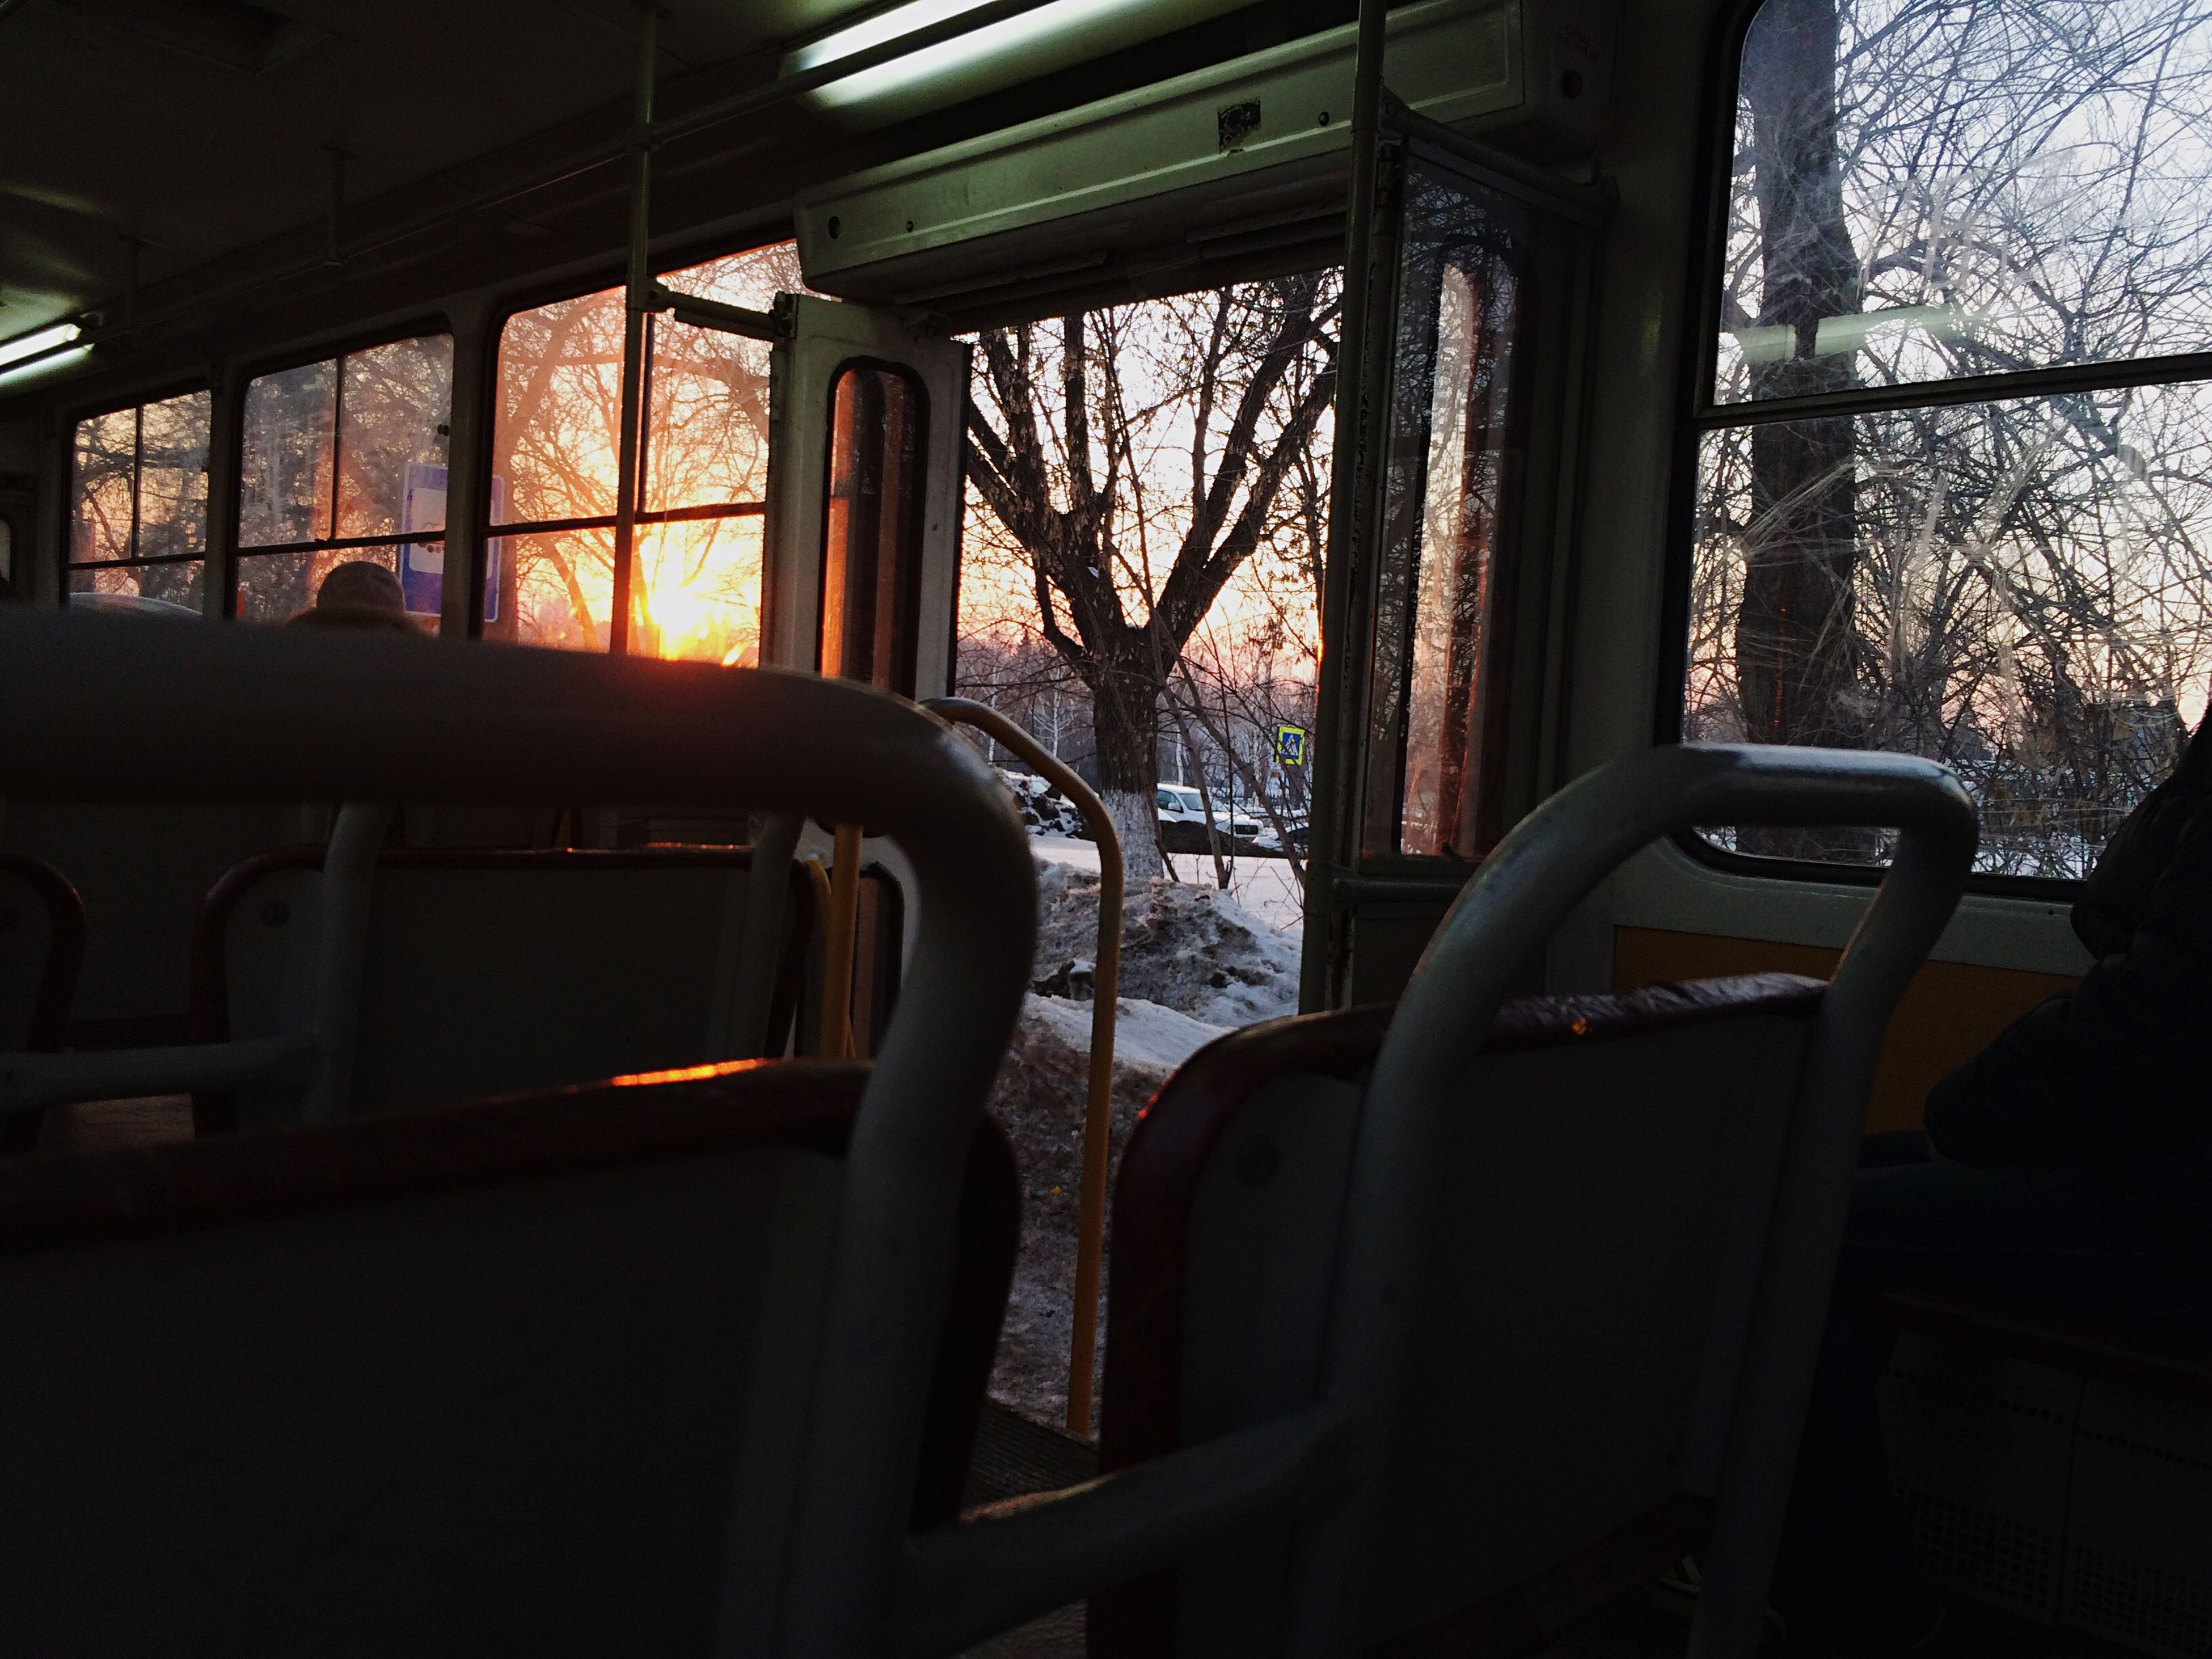 window, transportation, indoors, mode of transport, vehicle interior, car, land vehicle, glass - material, transparent, absence, tree, vehicle seat, empty, travel, no people, built structure, chair, sunlight, day, seat